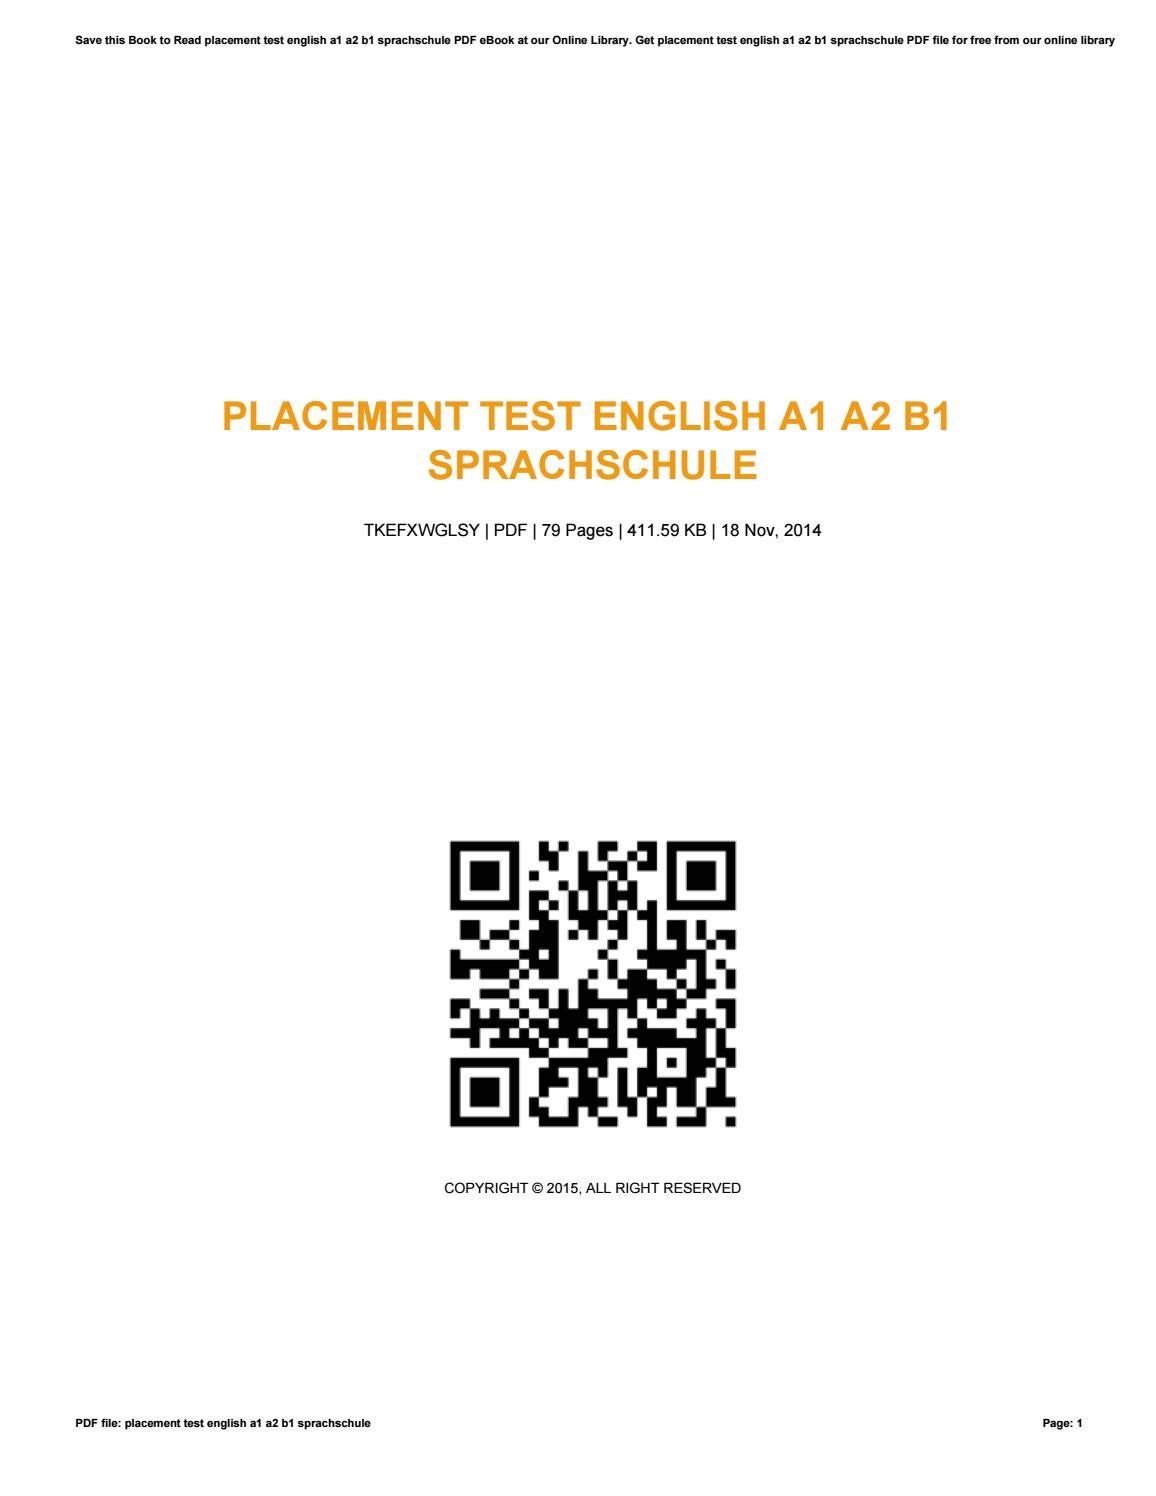 Placement test english a1 a2 b1 sprachschule